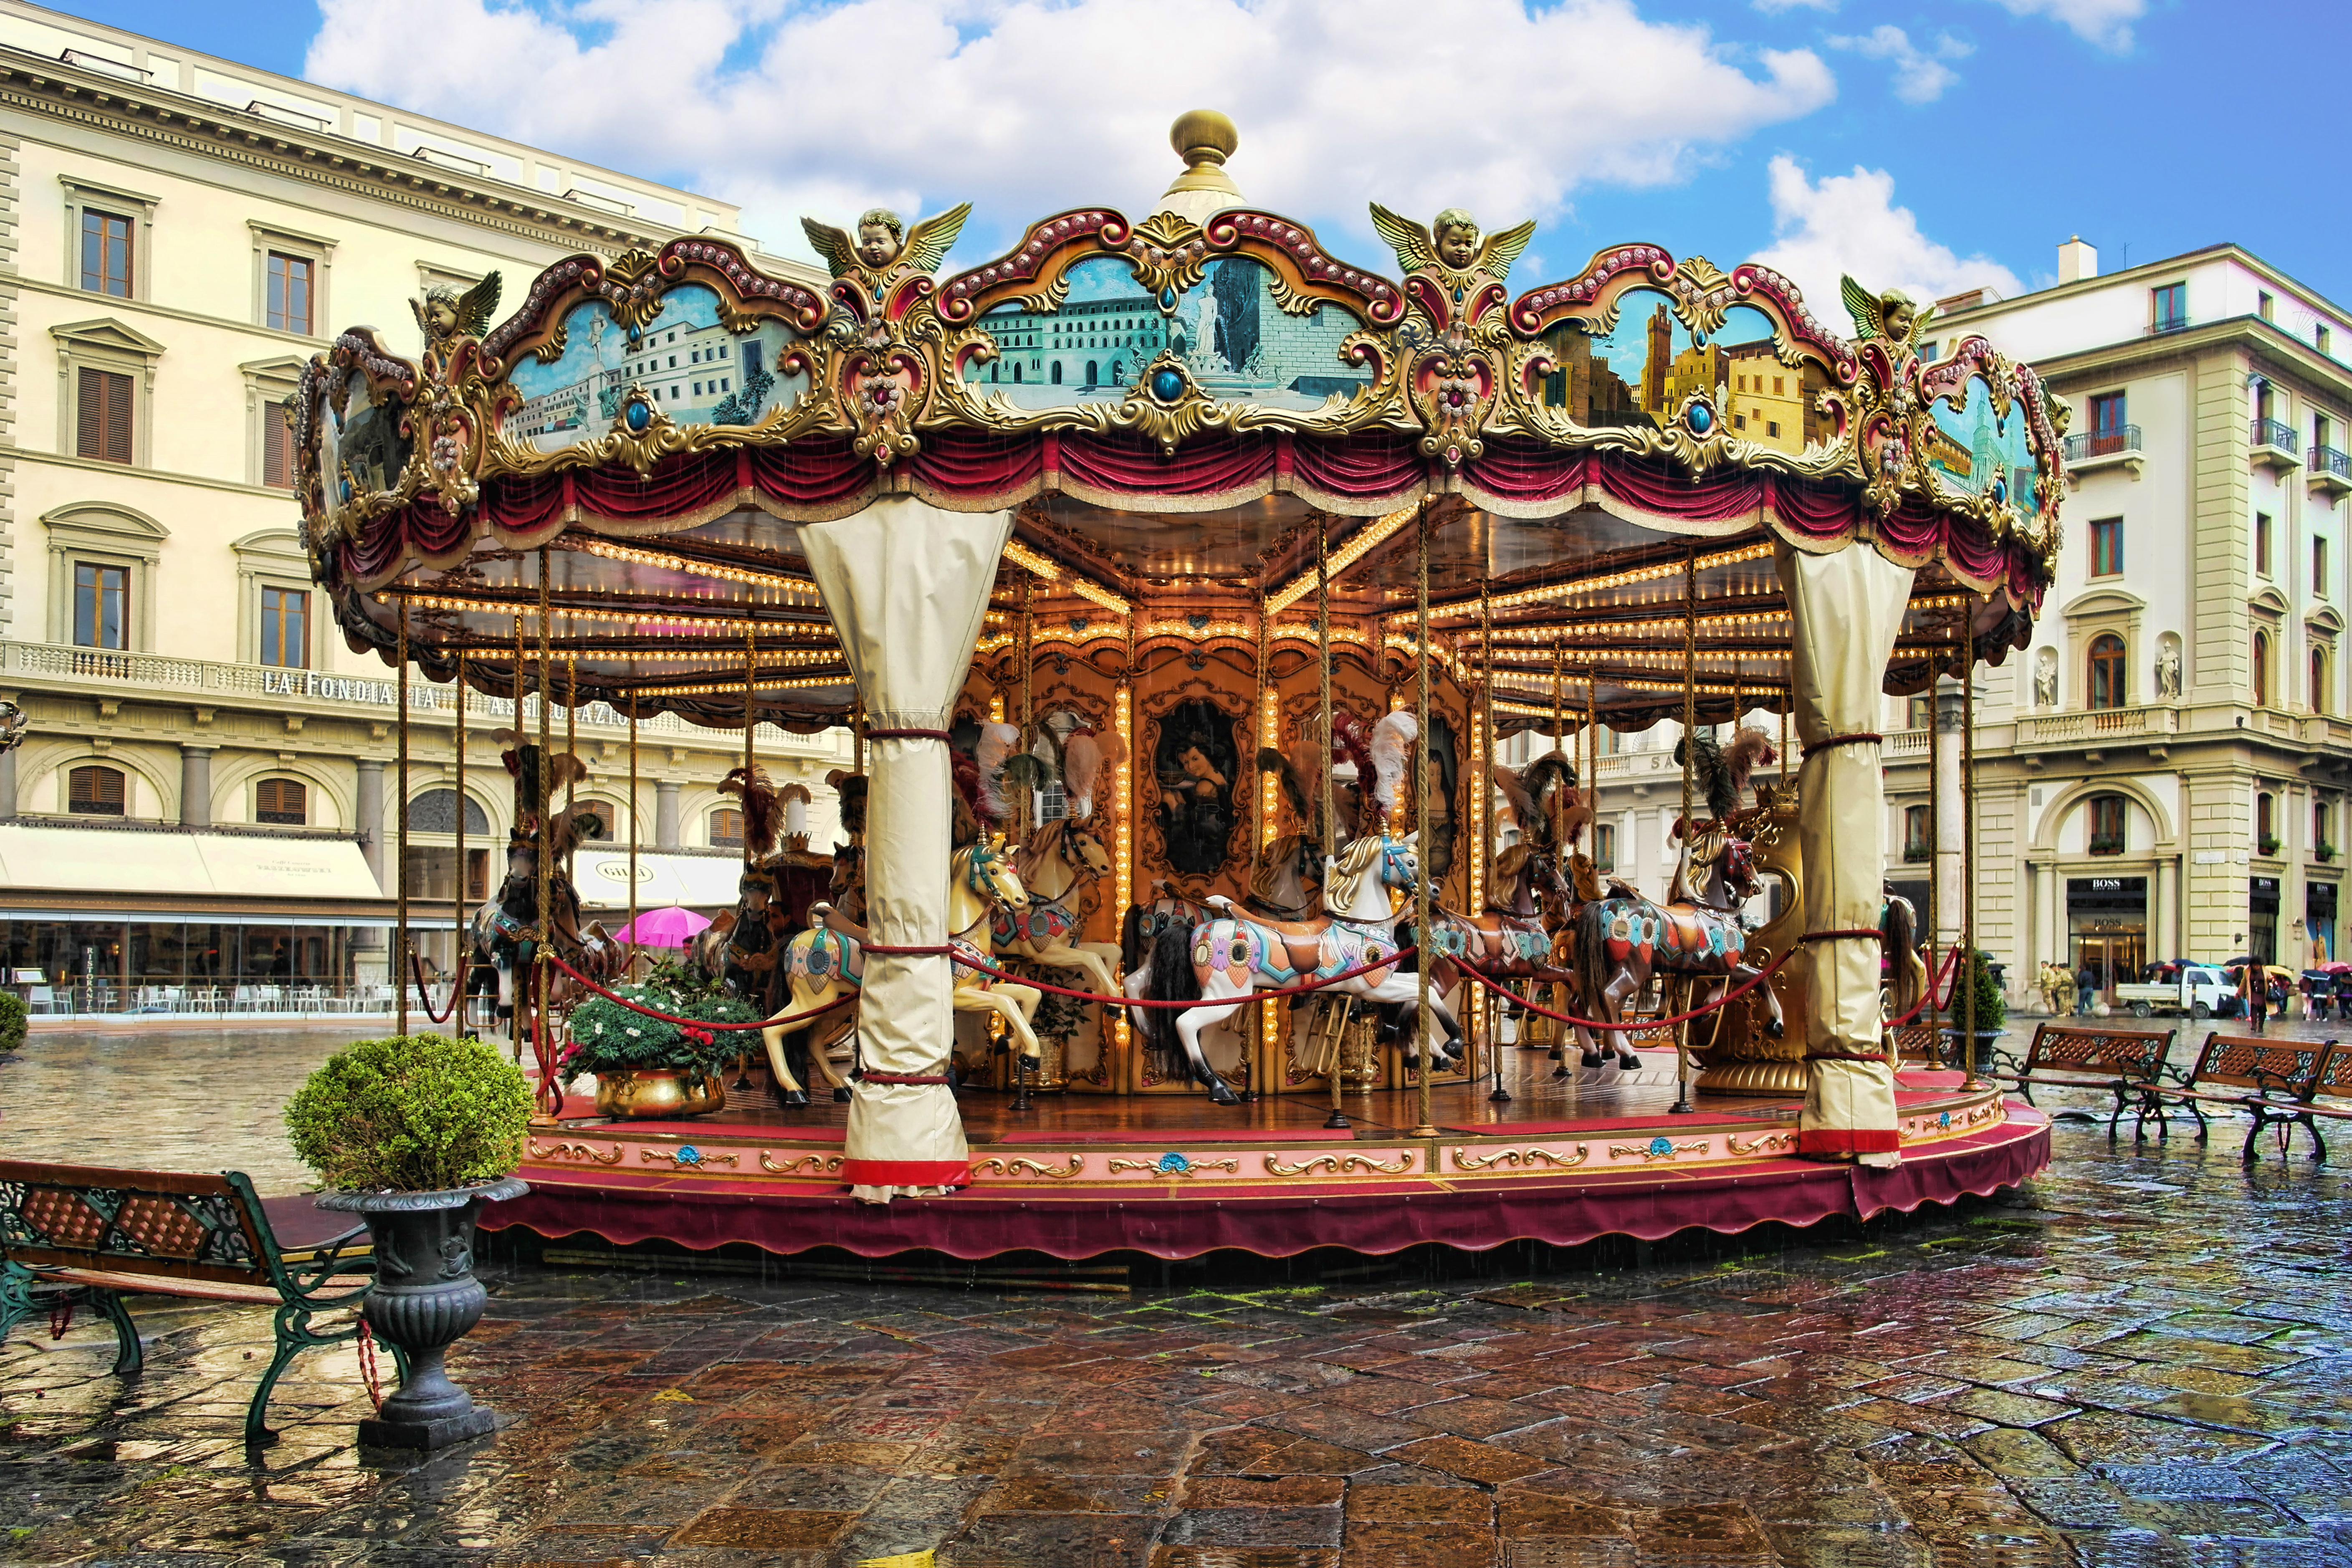 THE_ANTIQUE_CAROUSEL_OF_THE_PICCI_FAMILY_FLORENCE,_ITALY